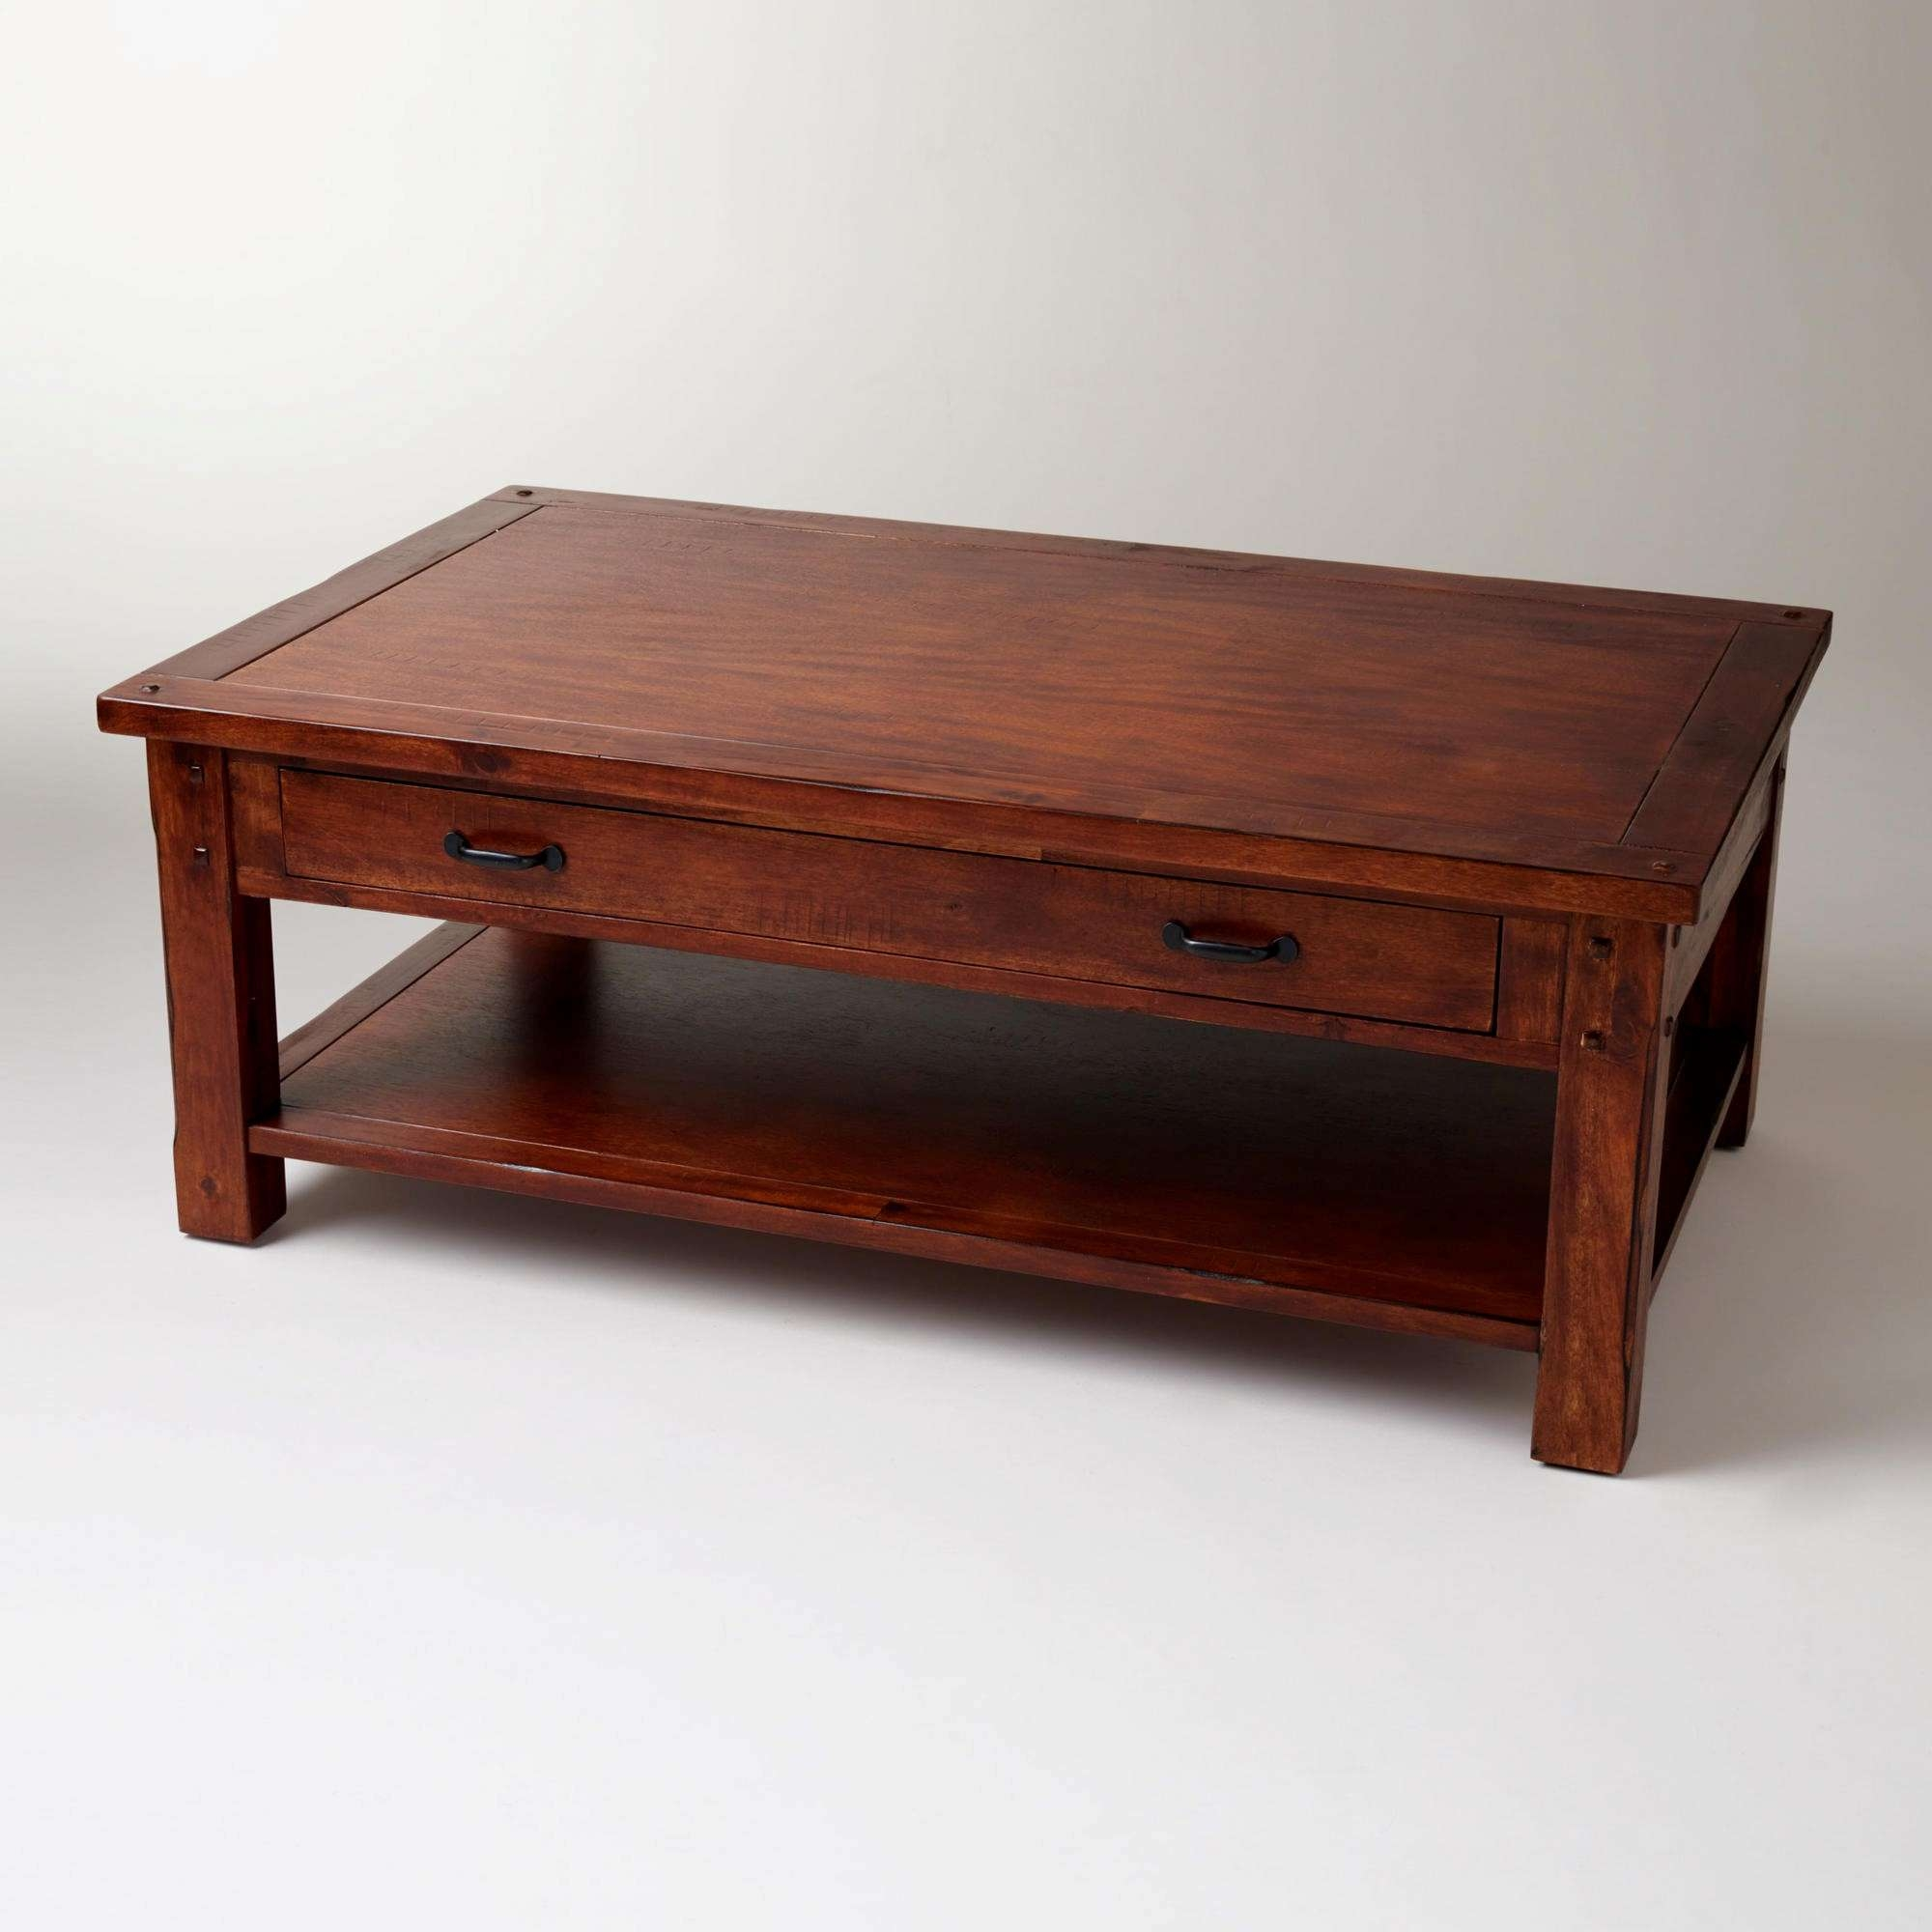 Widely Used Cherry Wood Coffee Table Sets With Coffee Tables : Solid Cherry Wood Coffee Table Walmart For Sale (View 18 of 20)